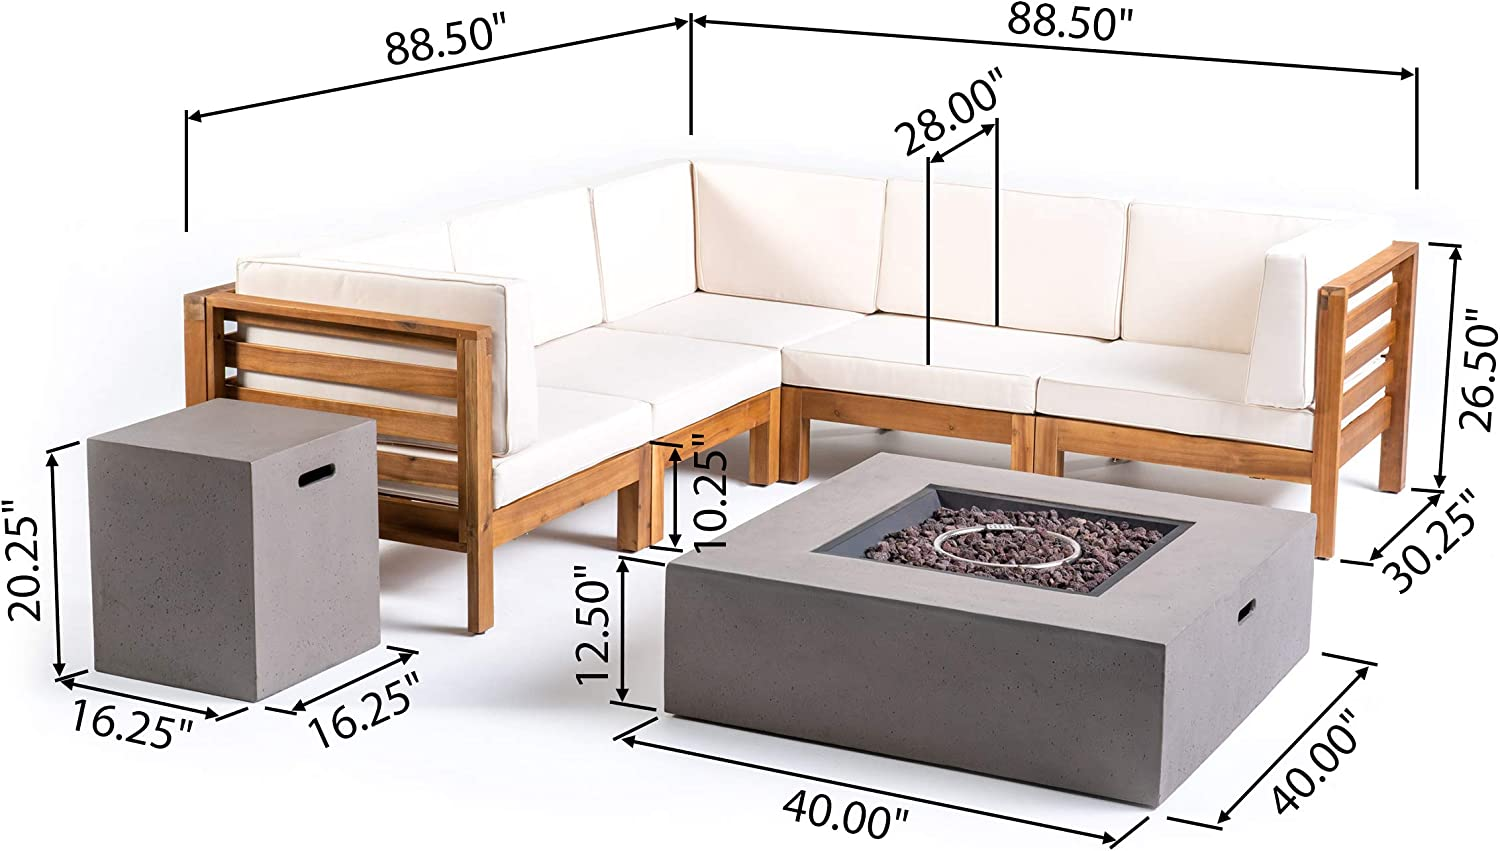 7-Piece 5-Seater Acacia Wood Outdoor Cushions Gray and Dark Gray Great Deal Furniture Xanthe Outdoor V-Shaped Sectional Sofa Set with Fire Pit